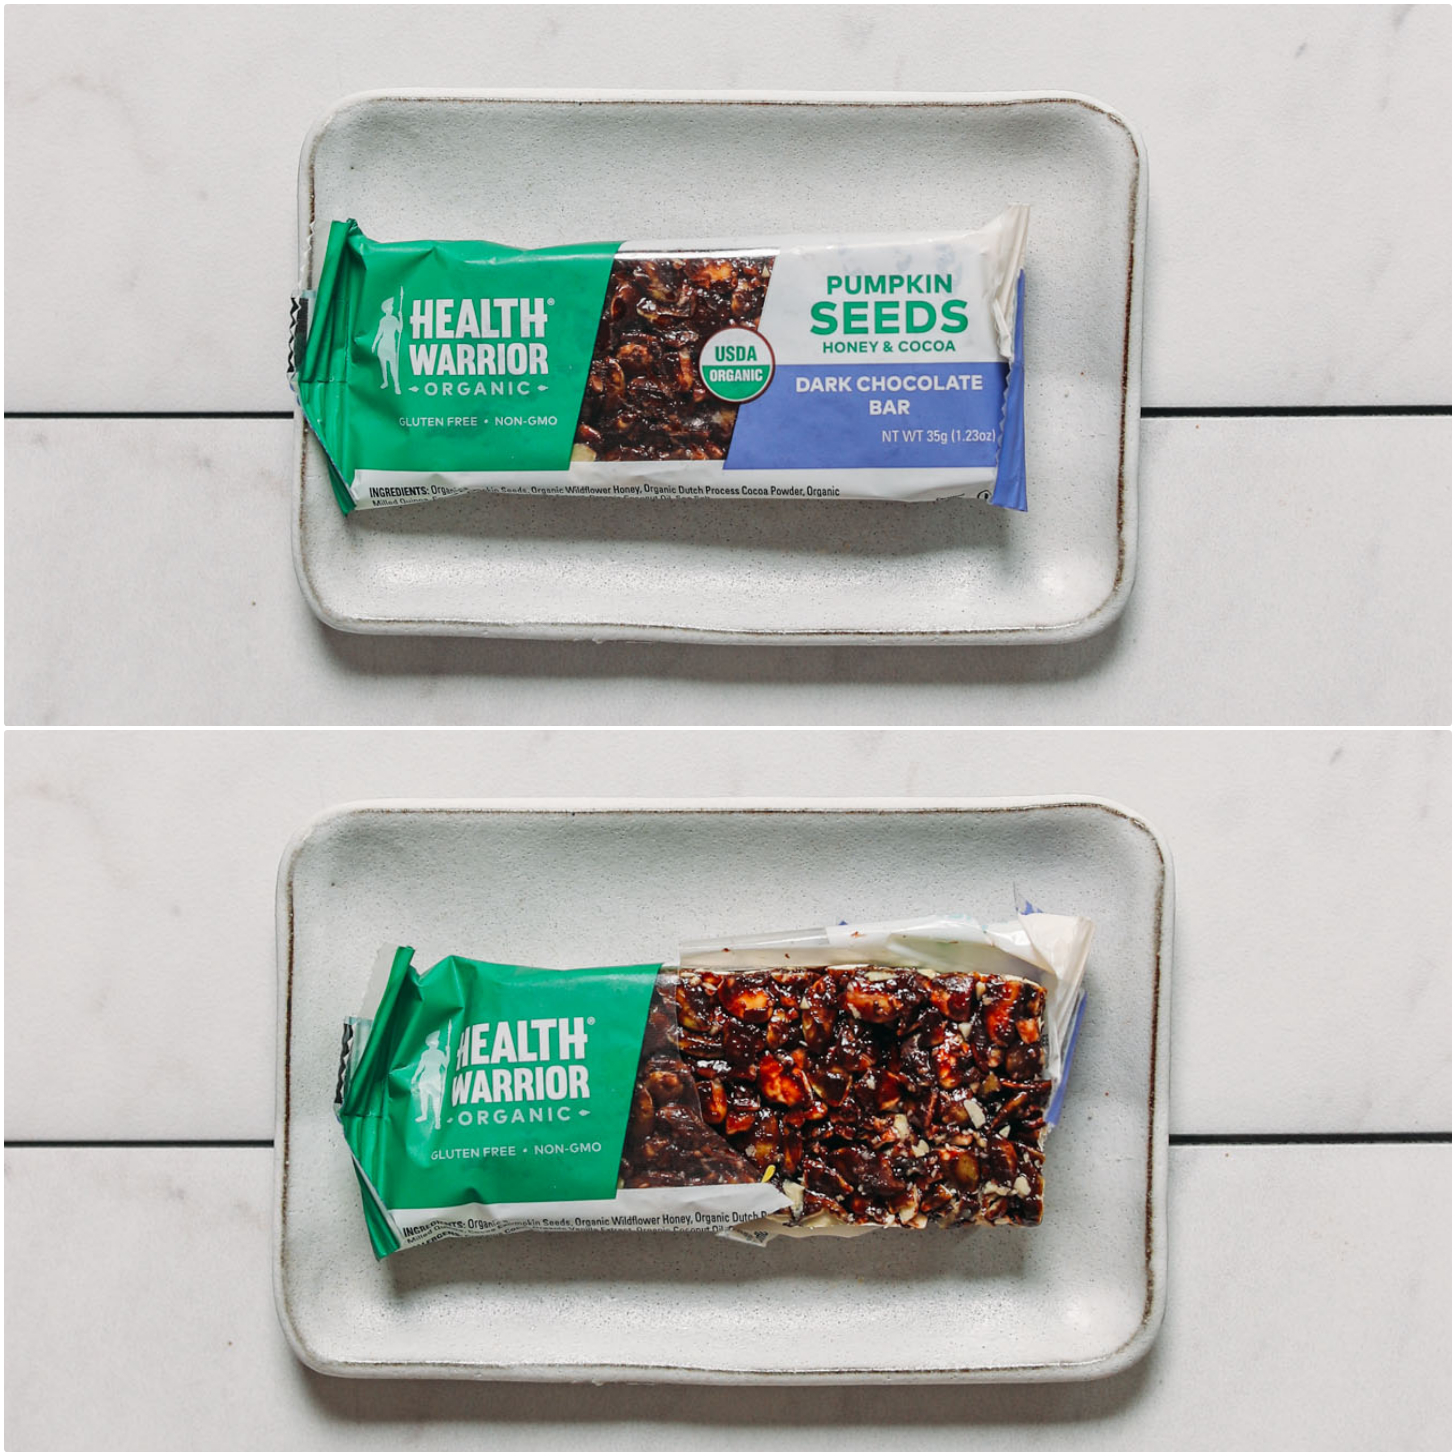 Closed and open package of a Health Warrior Pumpkin Seed Protein Bar for our unbiased protein bar review